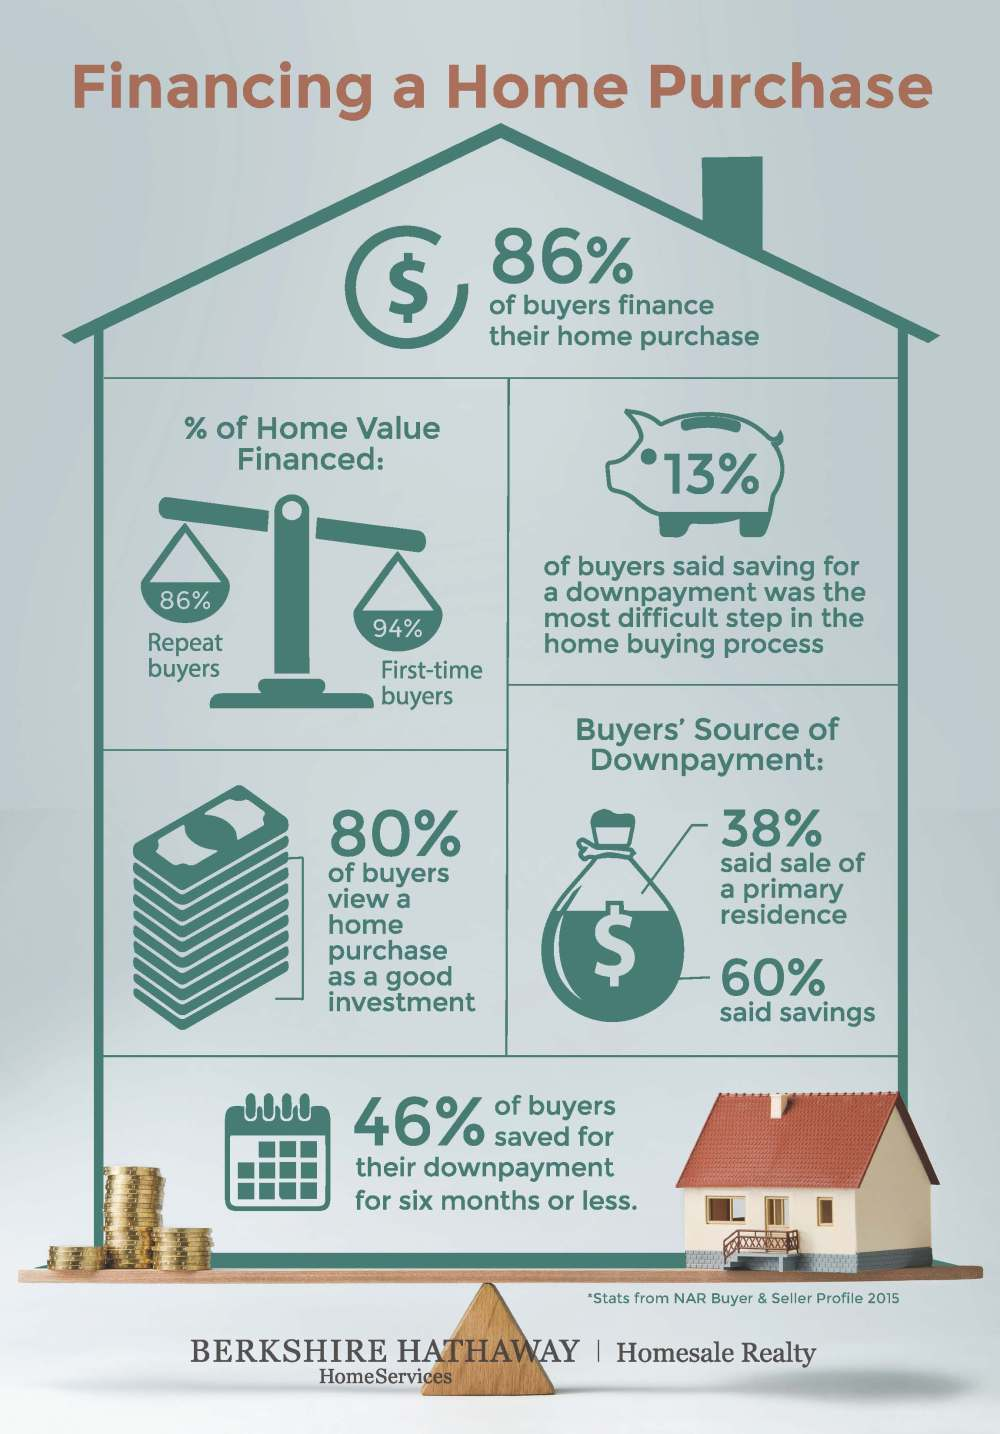 Financing a Home Purchase